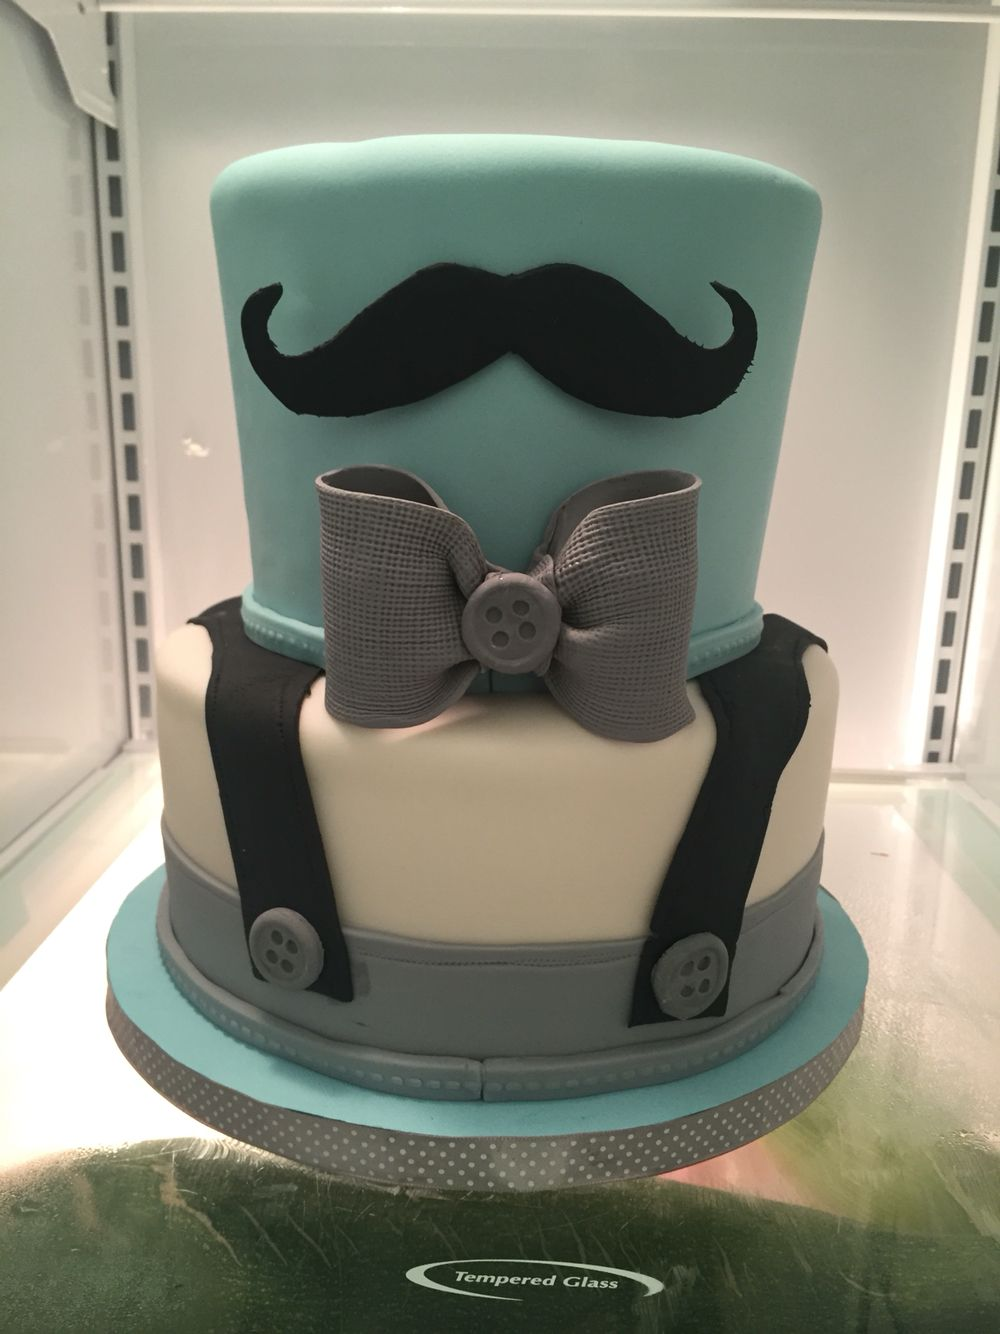 Lil Man Baby Shower Cakes : shower, cakes, Little, Shower, Cakes,, Cakes, Boys,